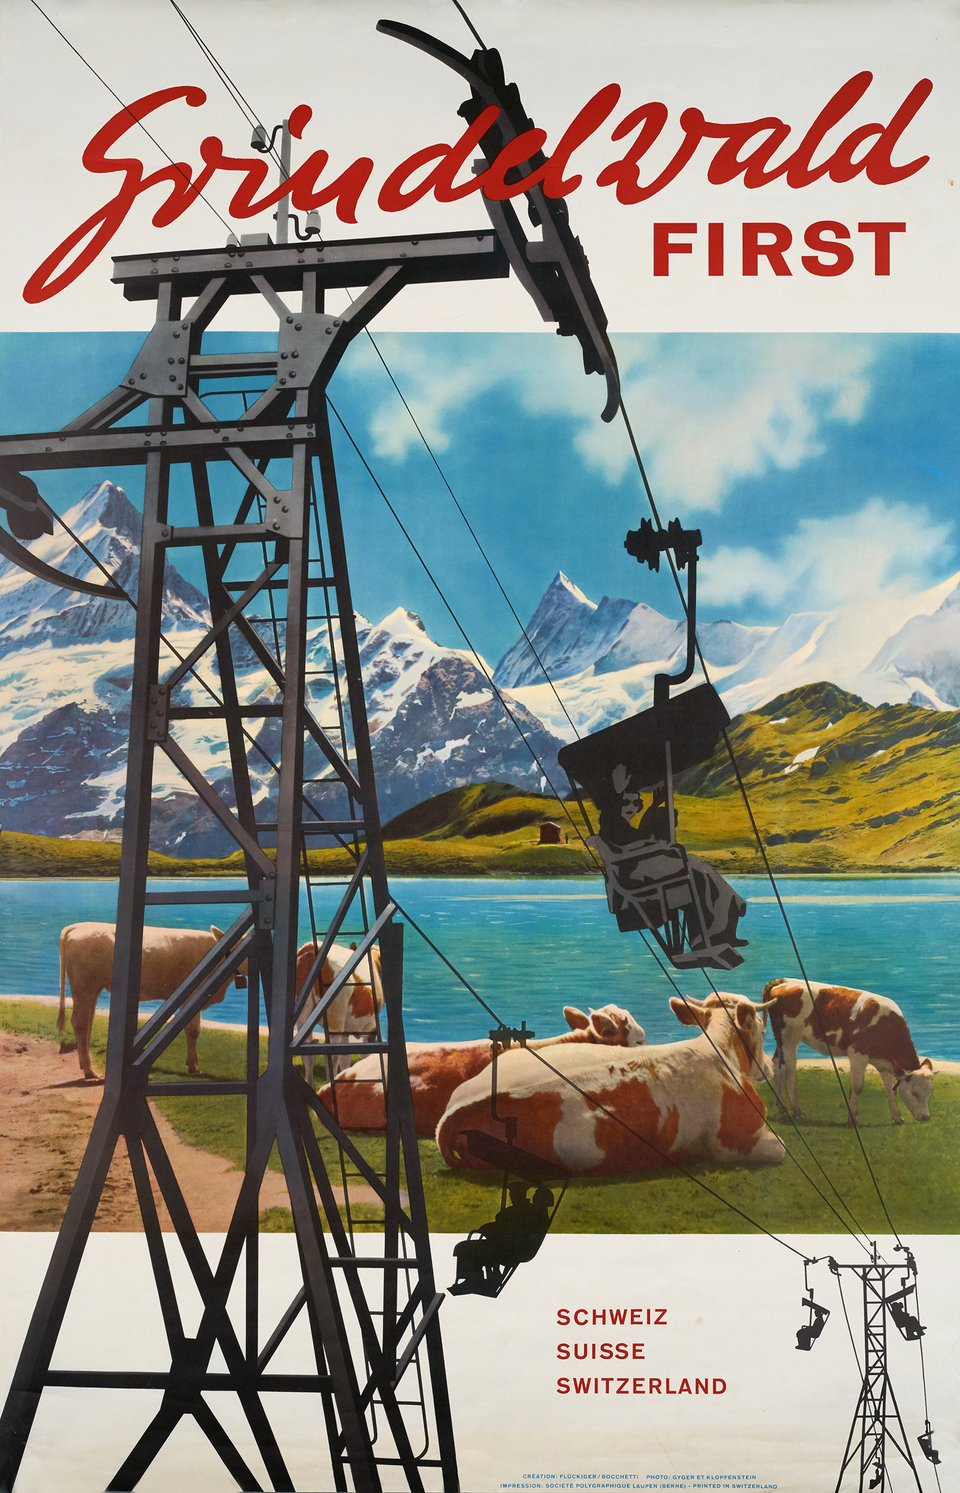 Grindelwald First – Affiche ancienne – Ernst BOCCHETTI, Adolf FLUCKIGER – 1950